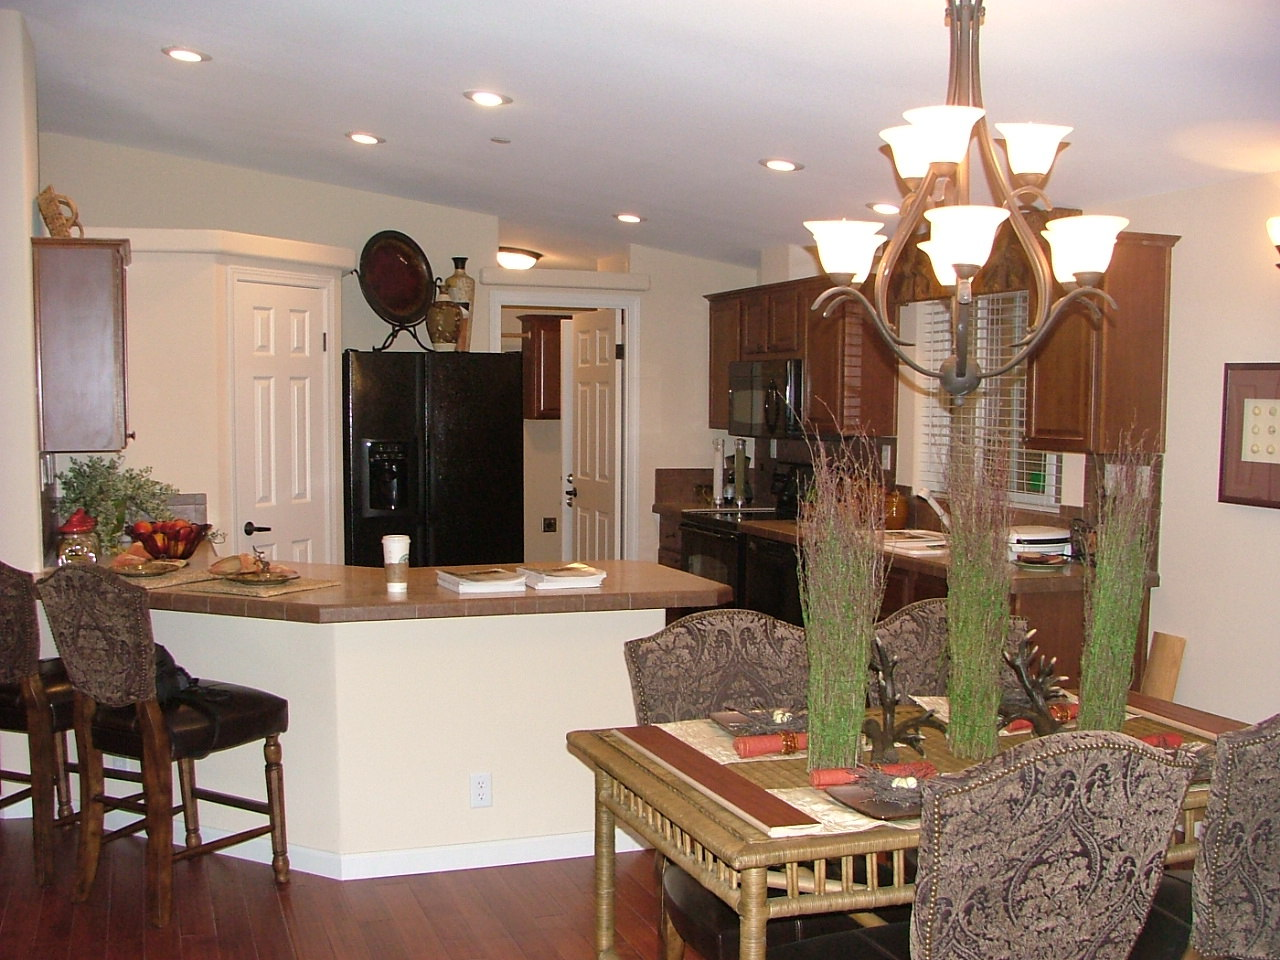 Palm Harbor Modular Homes >> The Metolius Cabin 4G28522A manufactured home floor plan ...